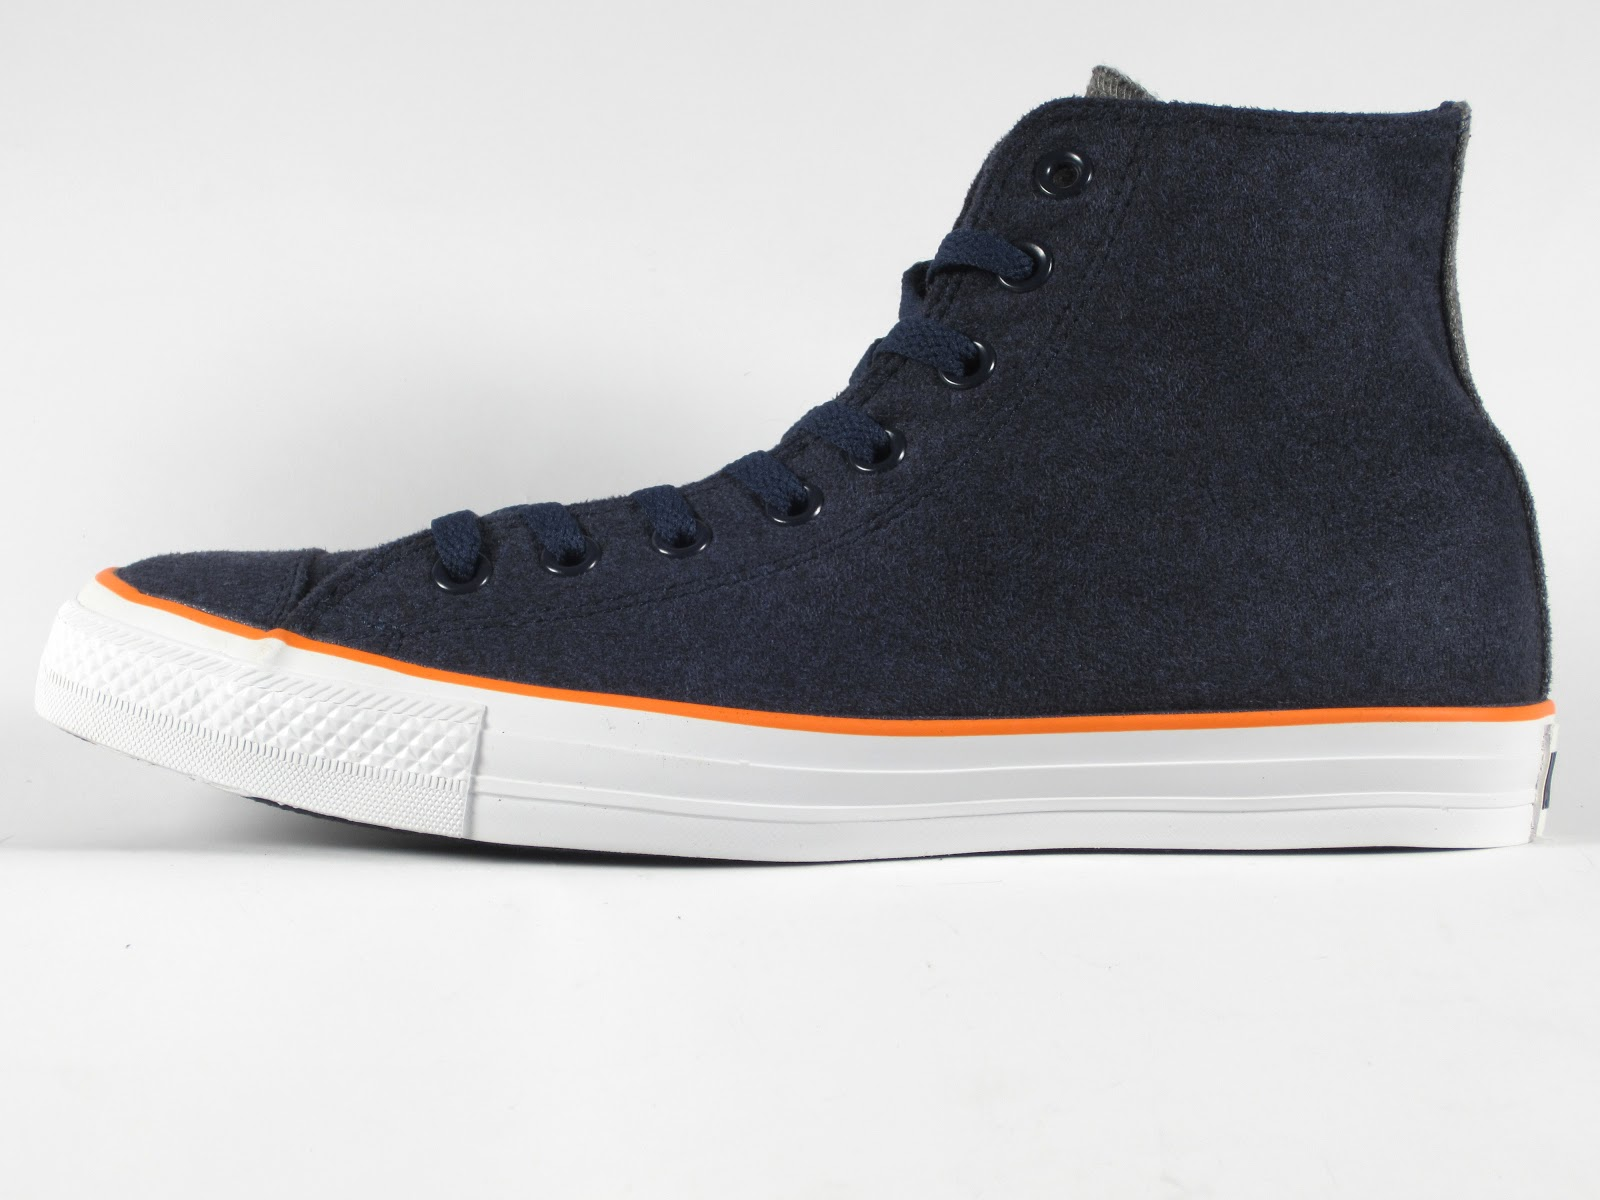 b0fbba5e6bc7 Converse Chuck Taylor All Star Ox Menswear Winter Weight Material.